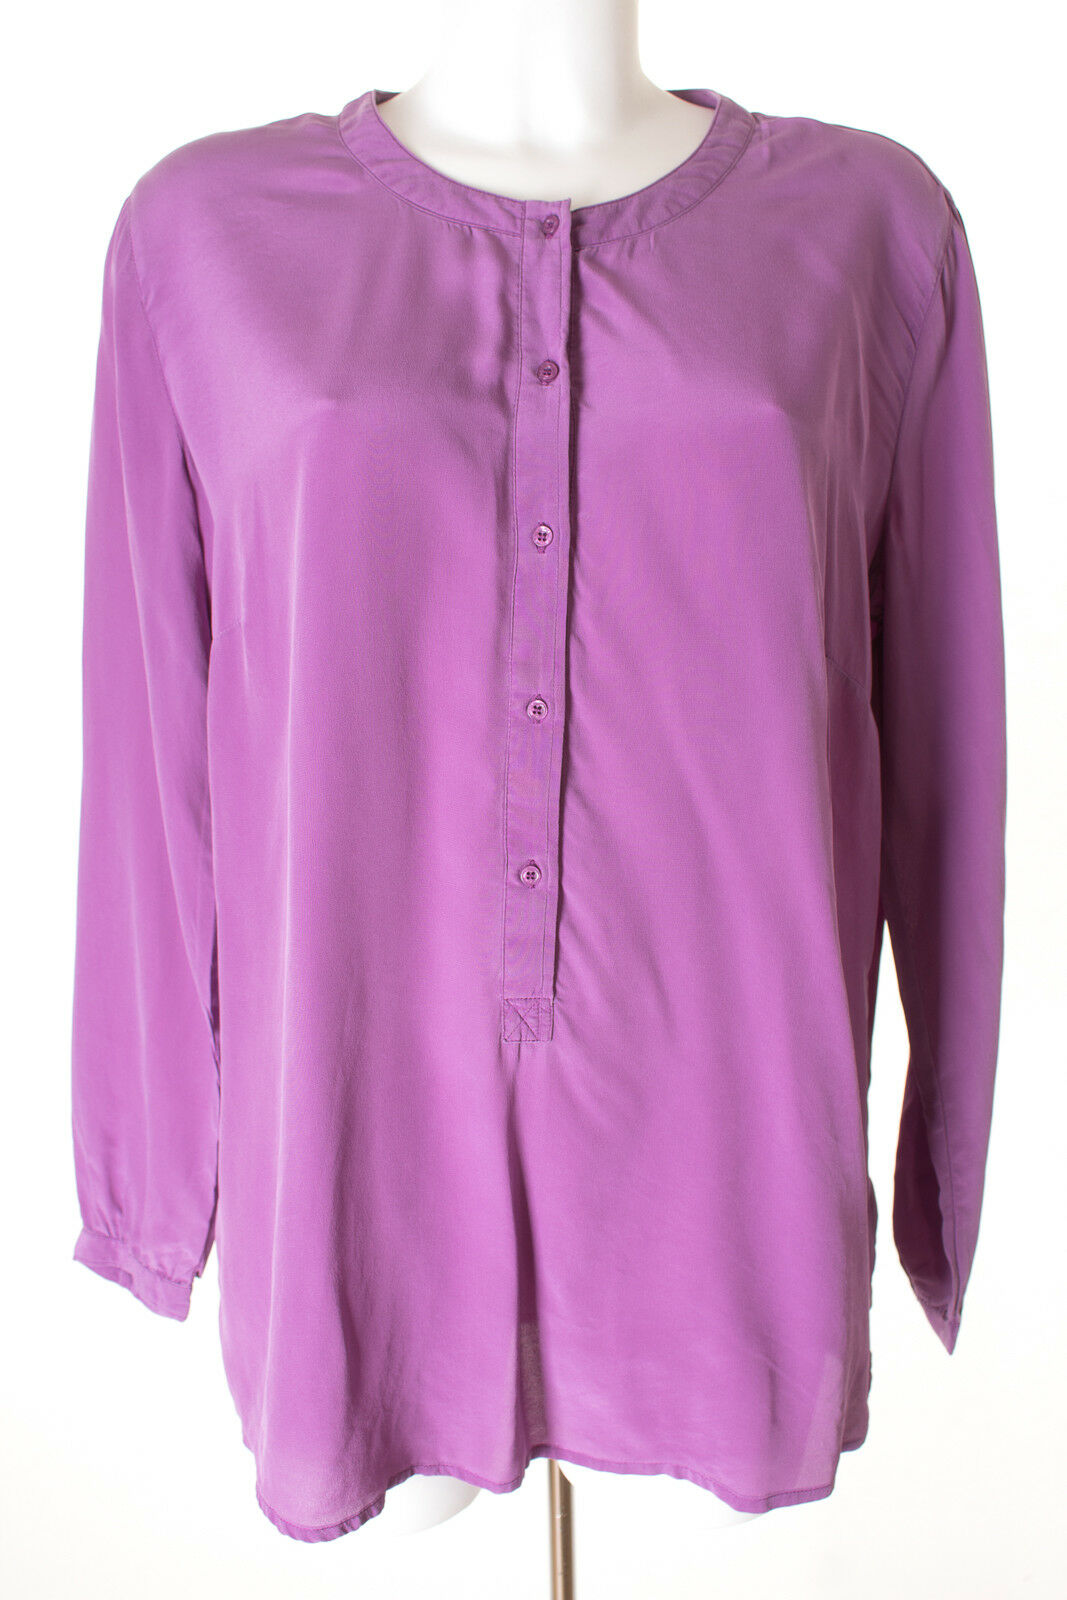 (THE MERCER) N.Y Blause Blouse Shirt Seide Damen Gr. DE 42 in lilat